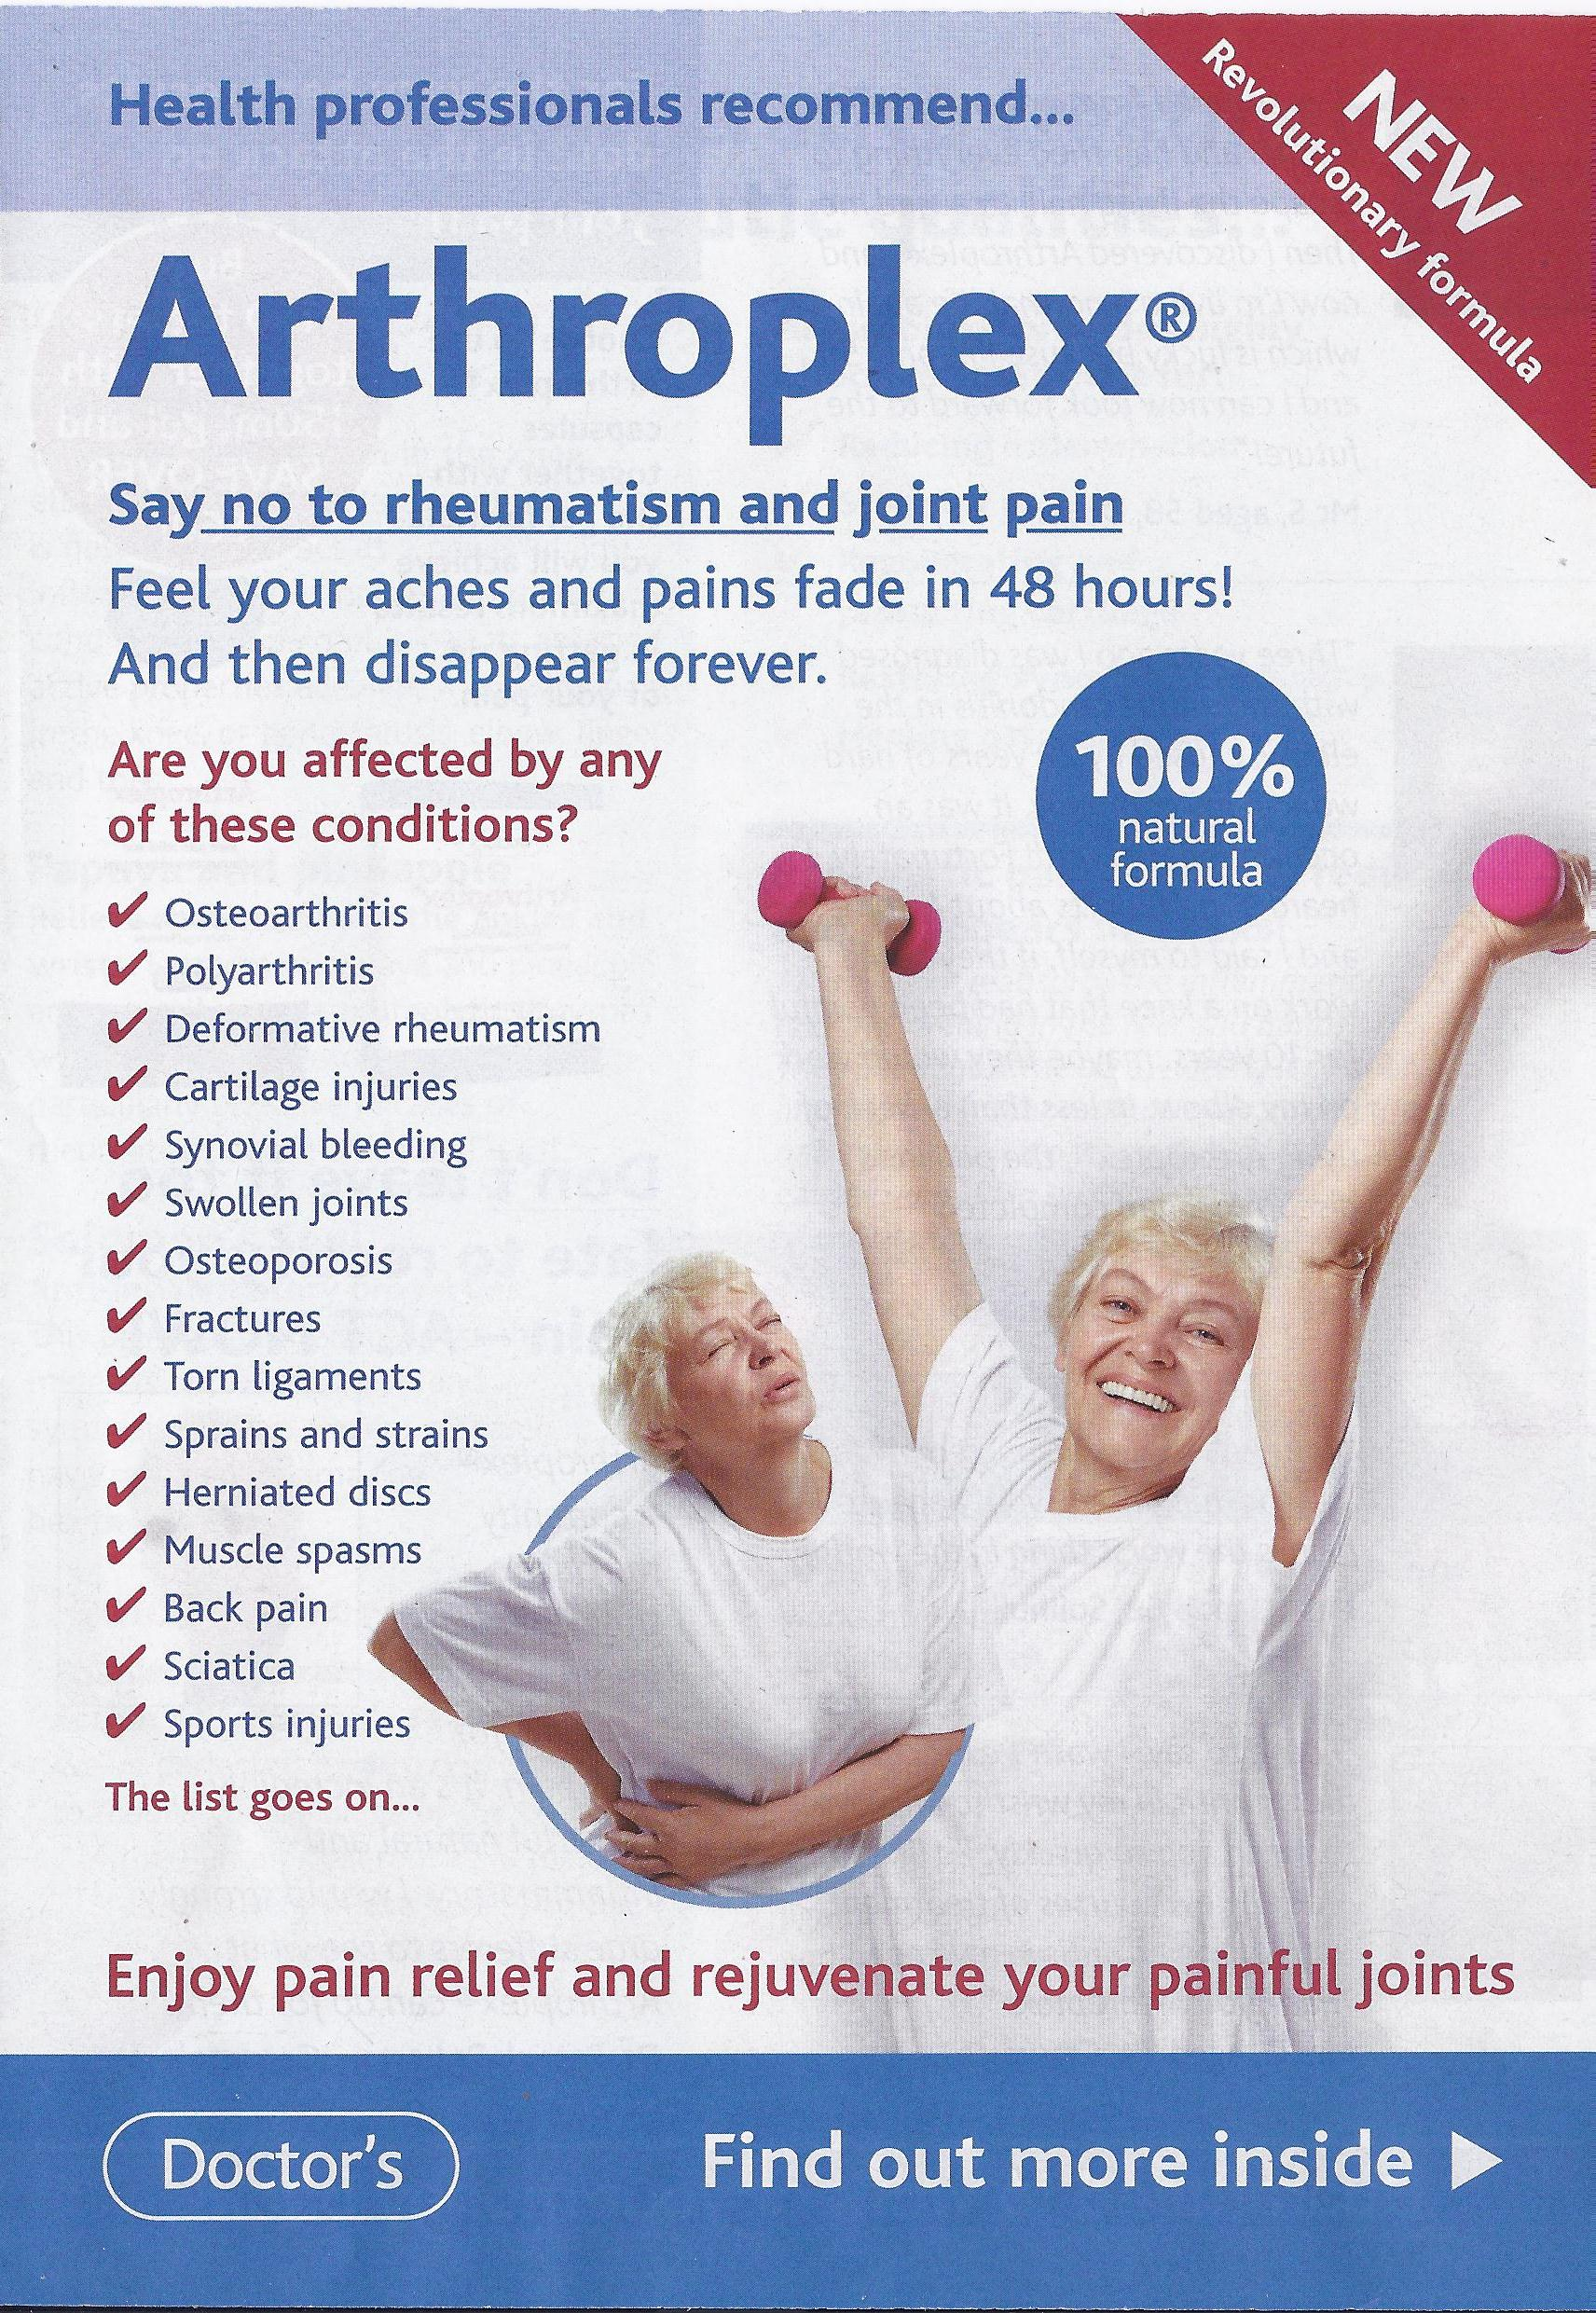 arthroplex leaflets featuring a veritable smrgsbord of misleading and unsubstantiated miracle health claims are still being slotted into various